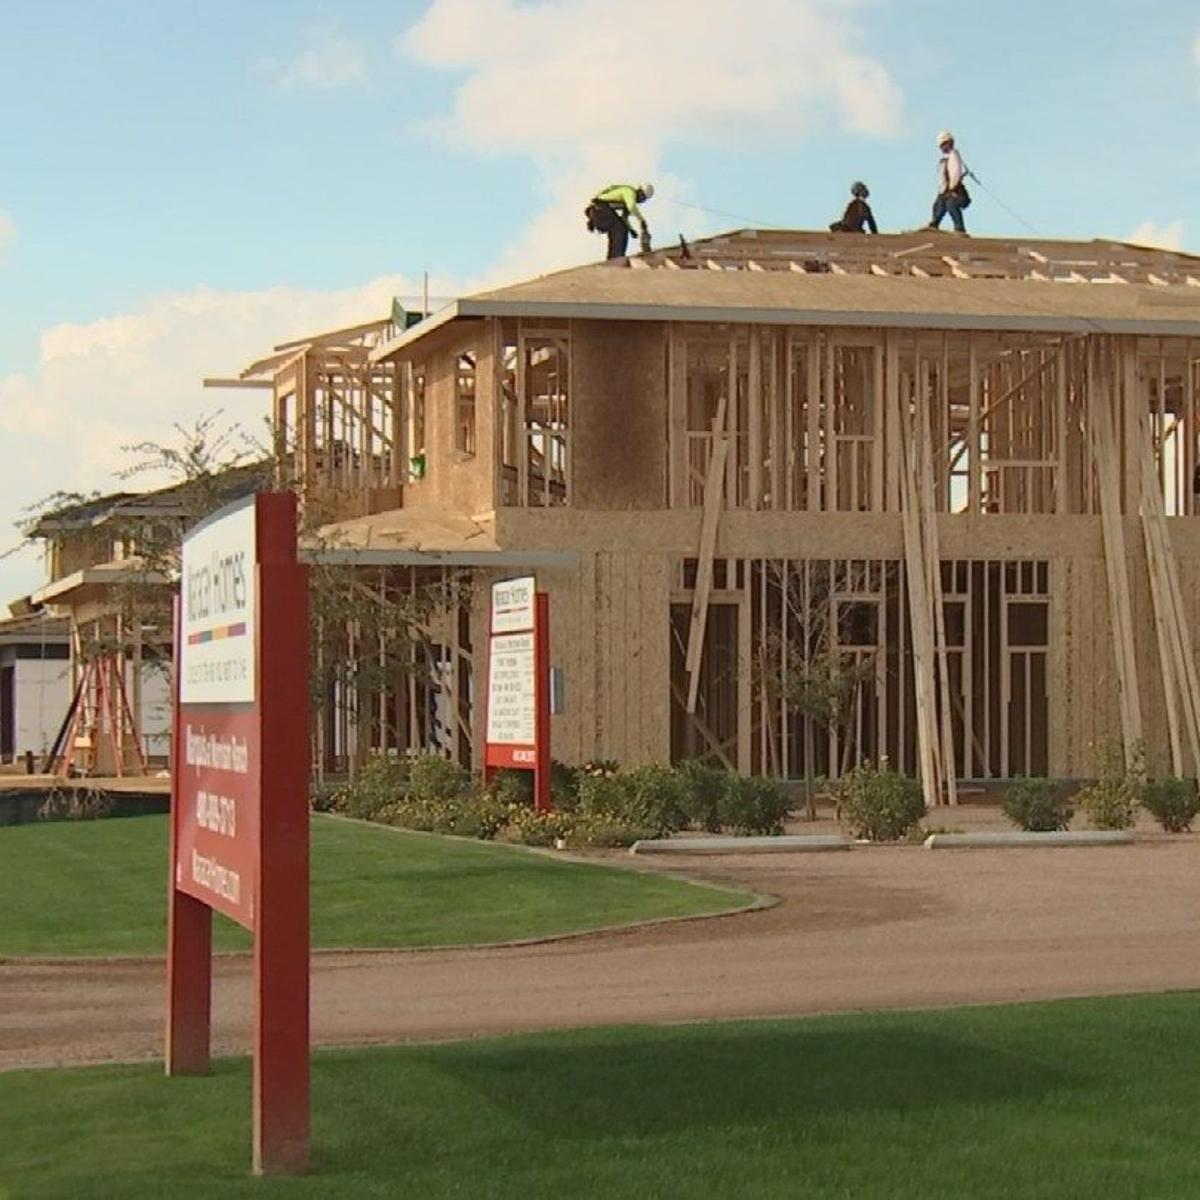 Housing Expert Price To Build A New Homes In Phoenix Area